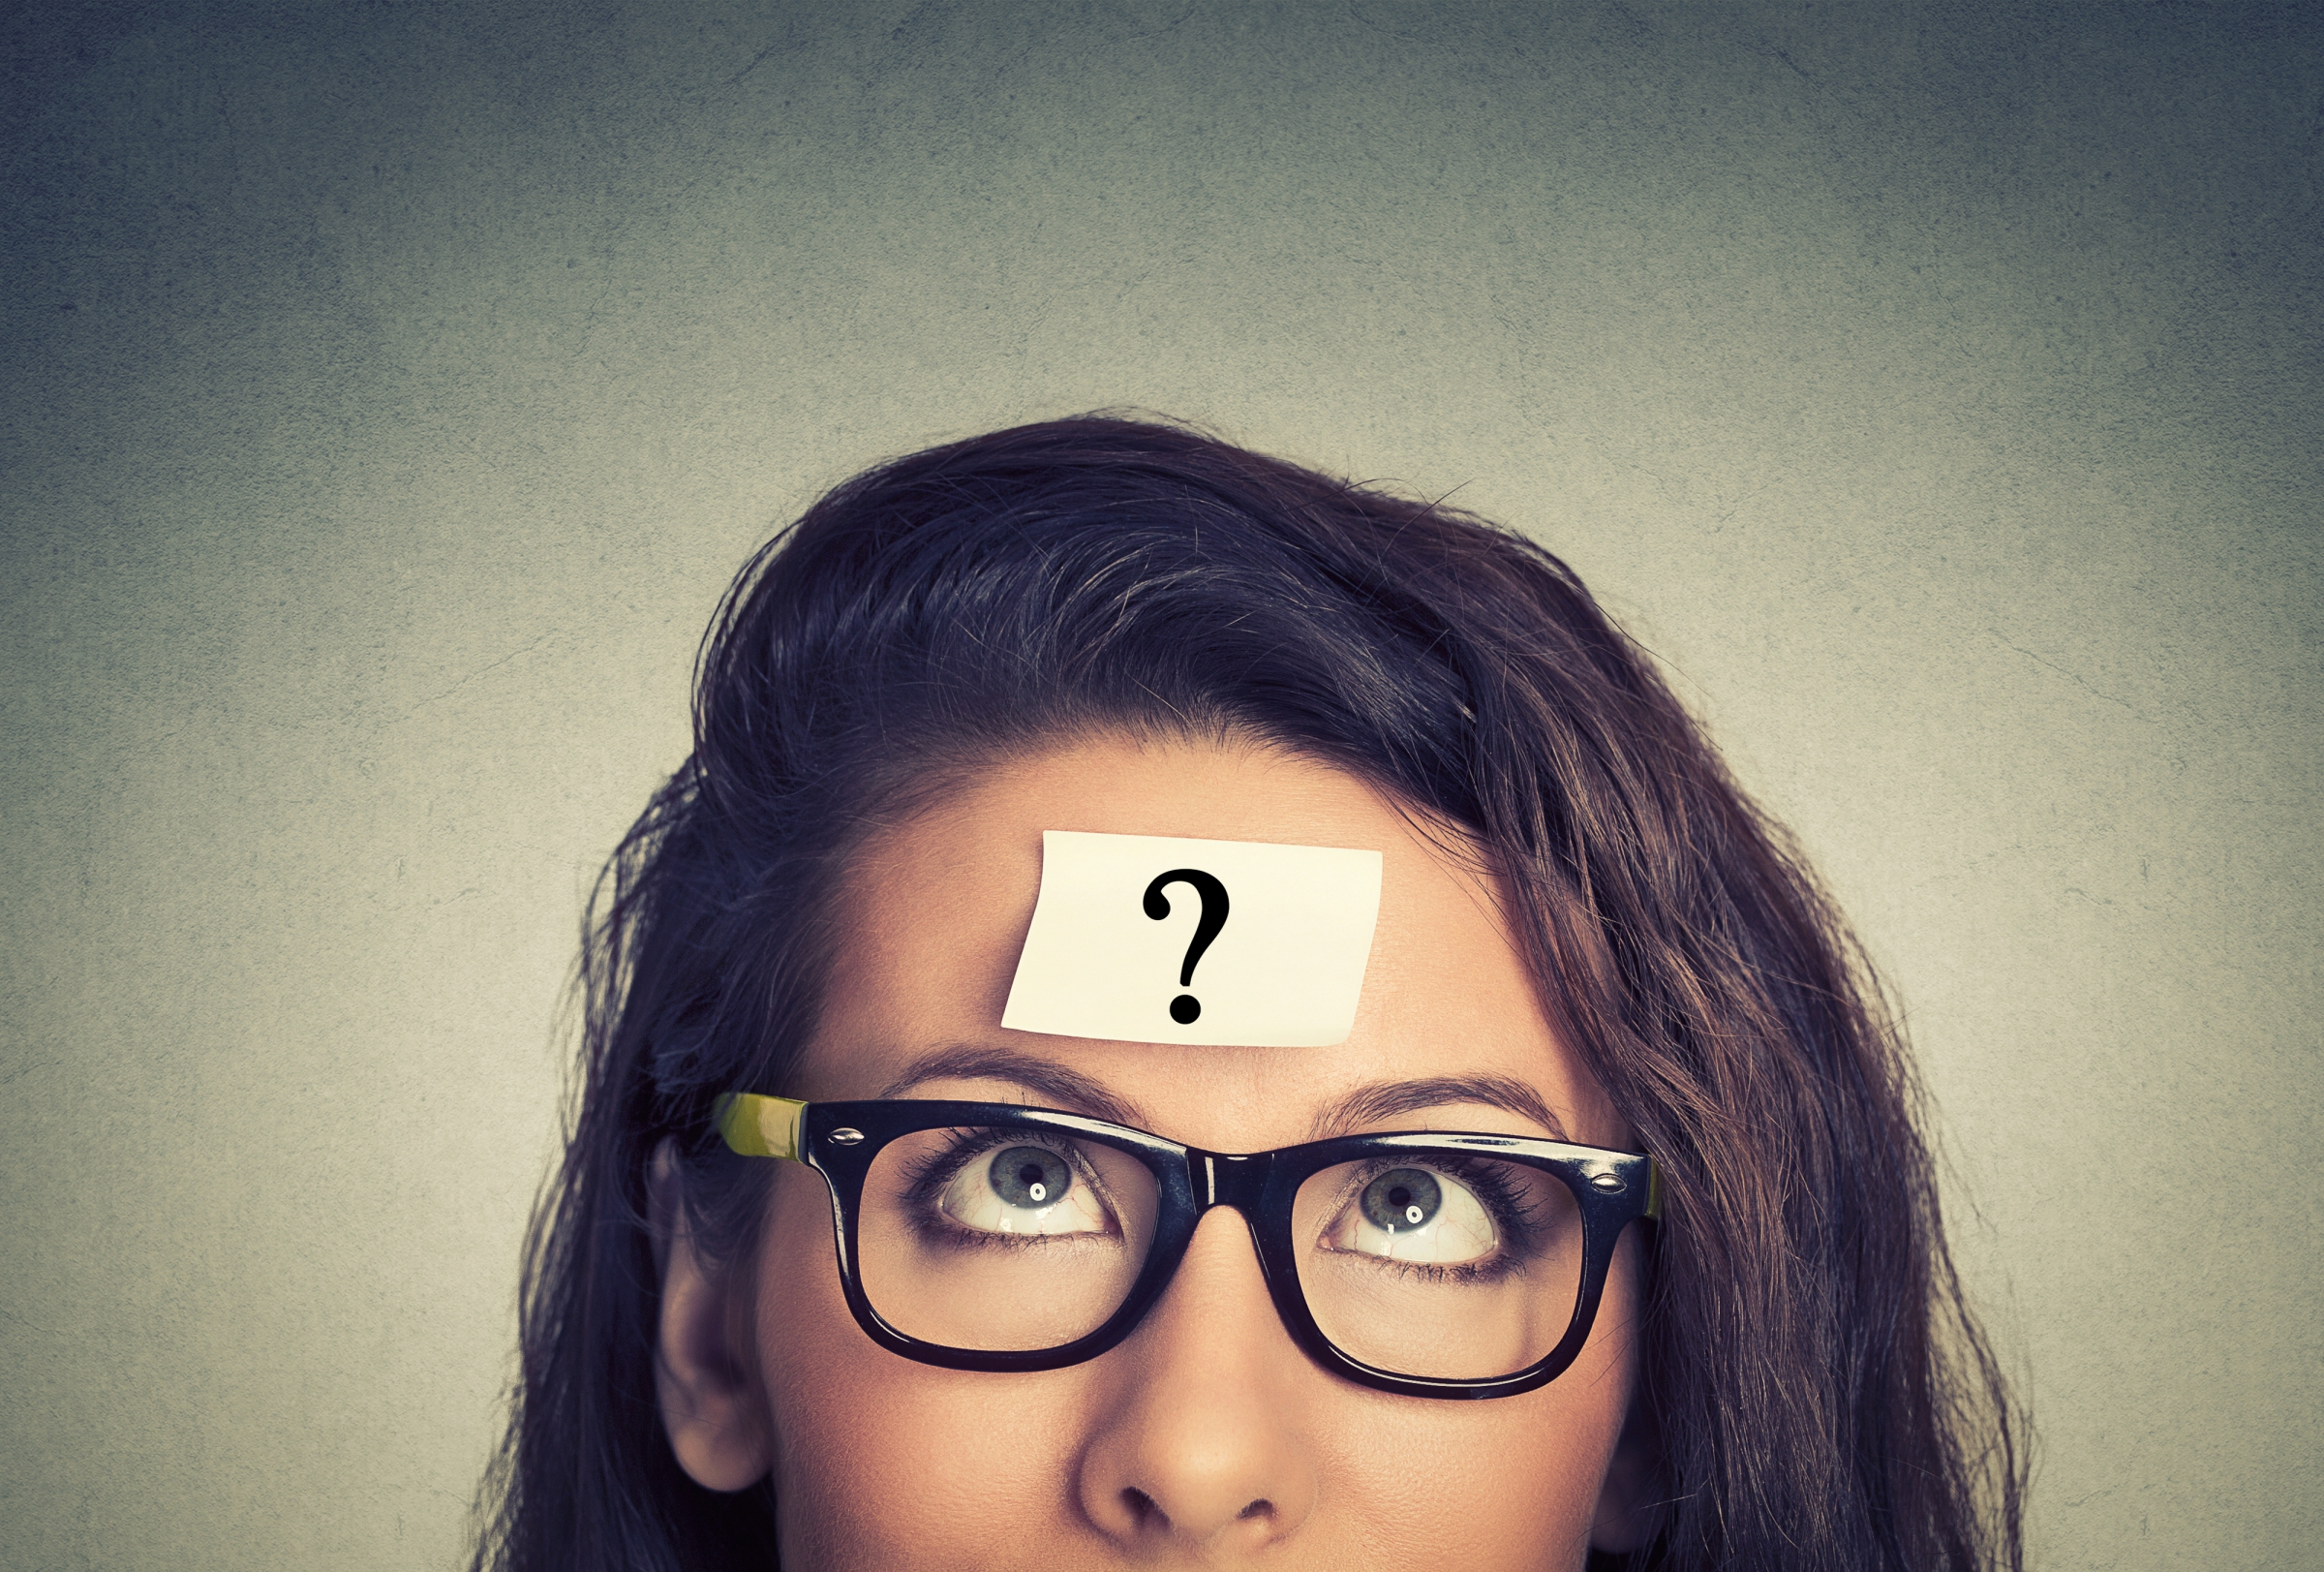 Woman thinking with a question mark on her head